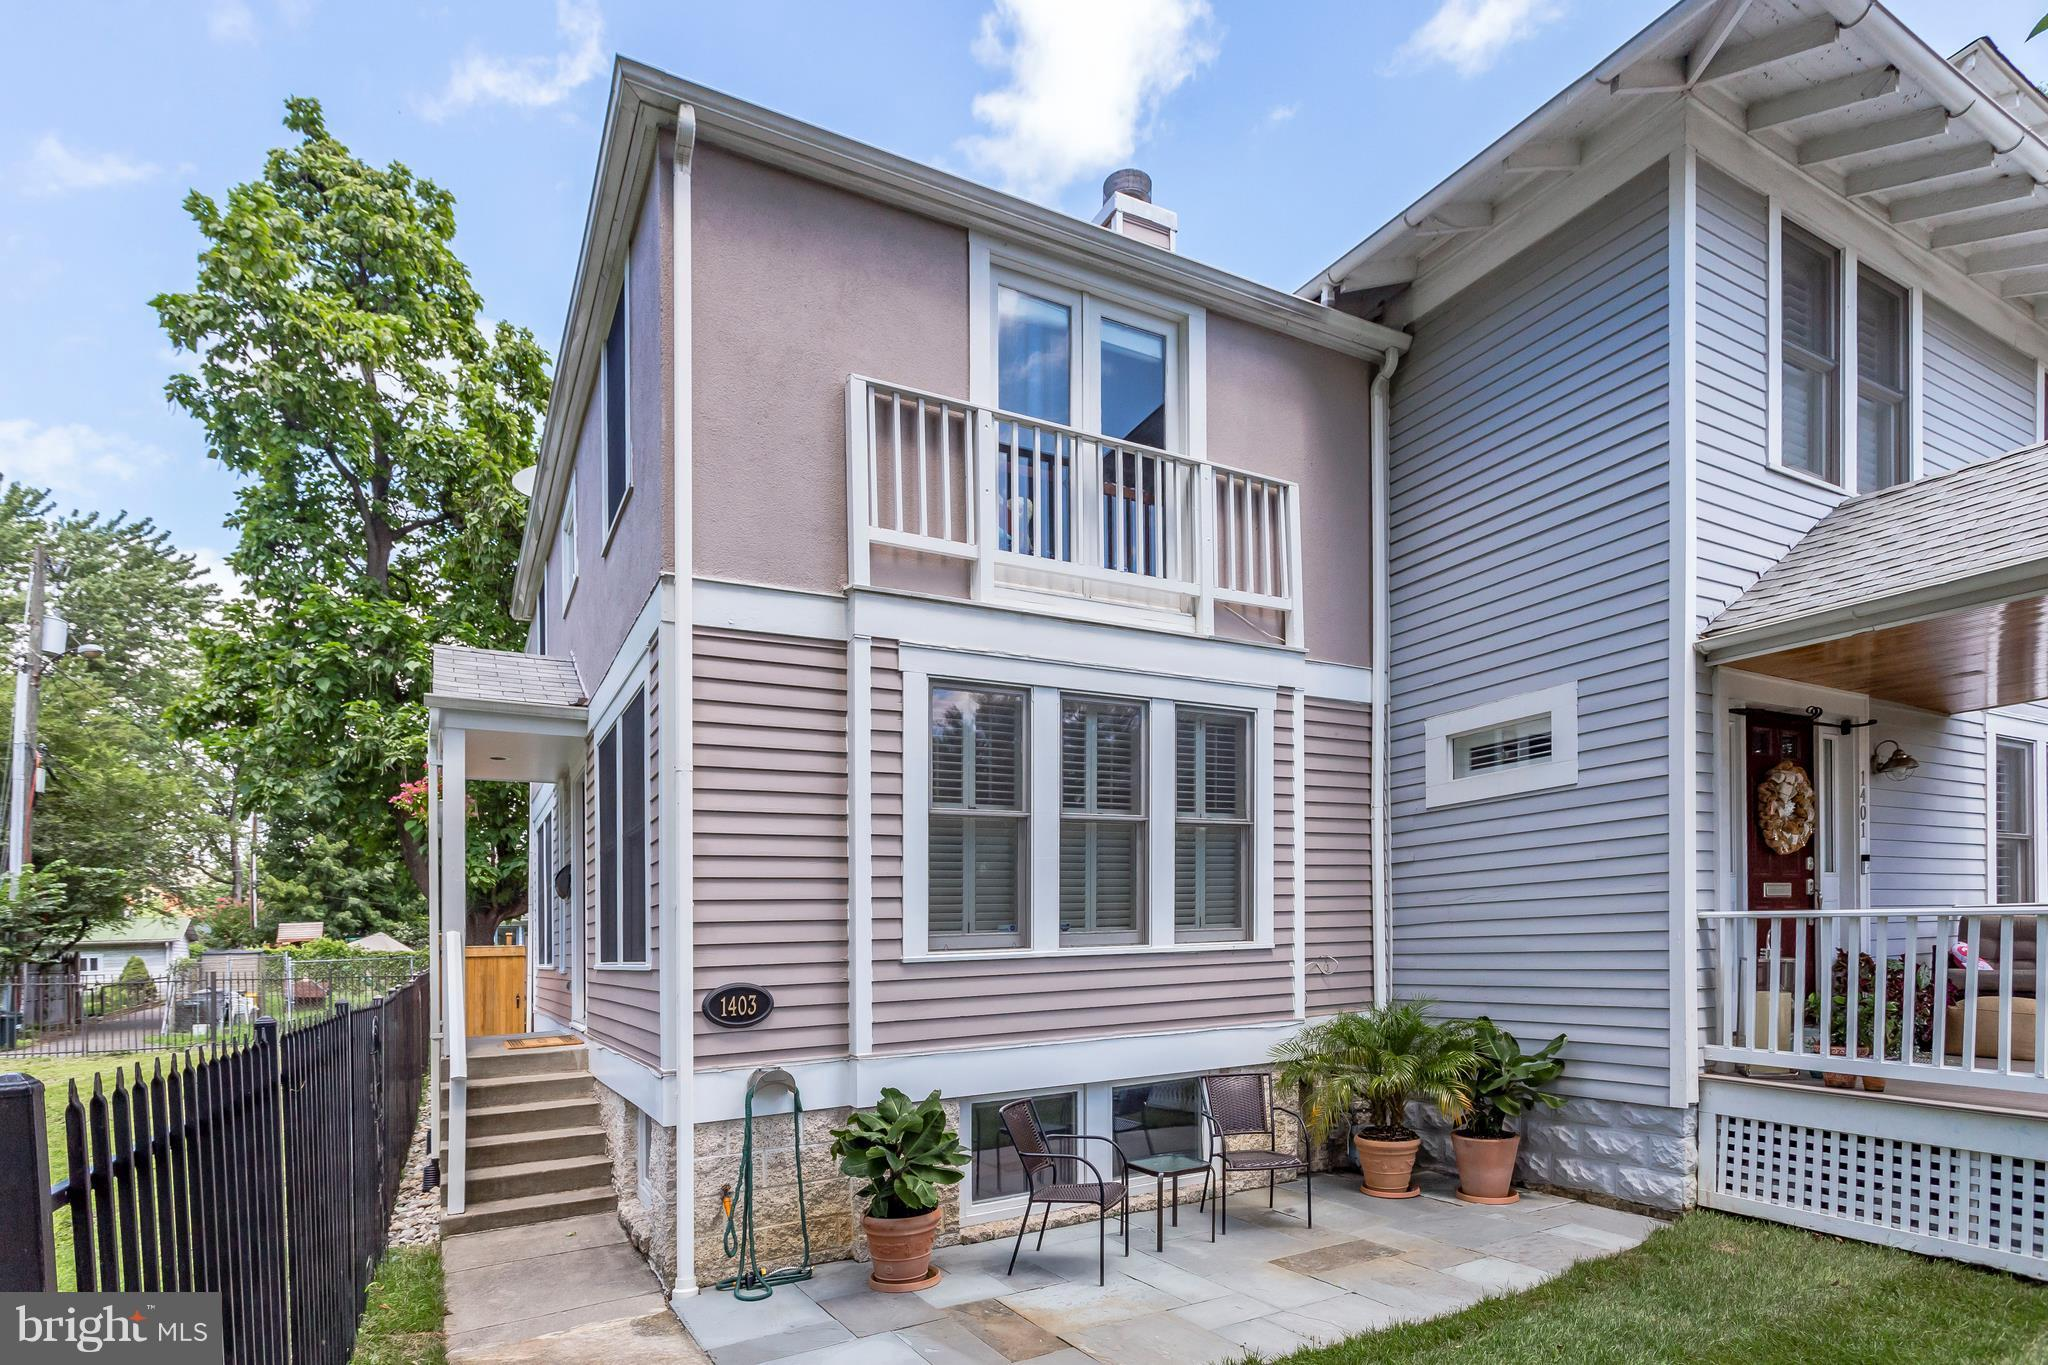 Just lowered price $20K! Sunny & Spacious TH built in 1993.Private front yard & patio space,rear composite deck & off street parking! Lg Kit. w/gas stove,pro-style hood,all SS appliances,Granite C'tops & Table Space opens to rear yard.Huge bedrms all w/their own private bath.High Ceilings,HWF's,2 Fireplaces,Plantation Shutters,Recessed Lighting,Fully Finished LL. Floorplans in Virtual Tour.